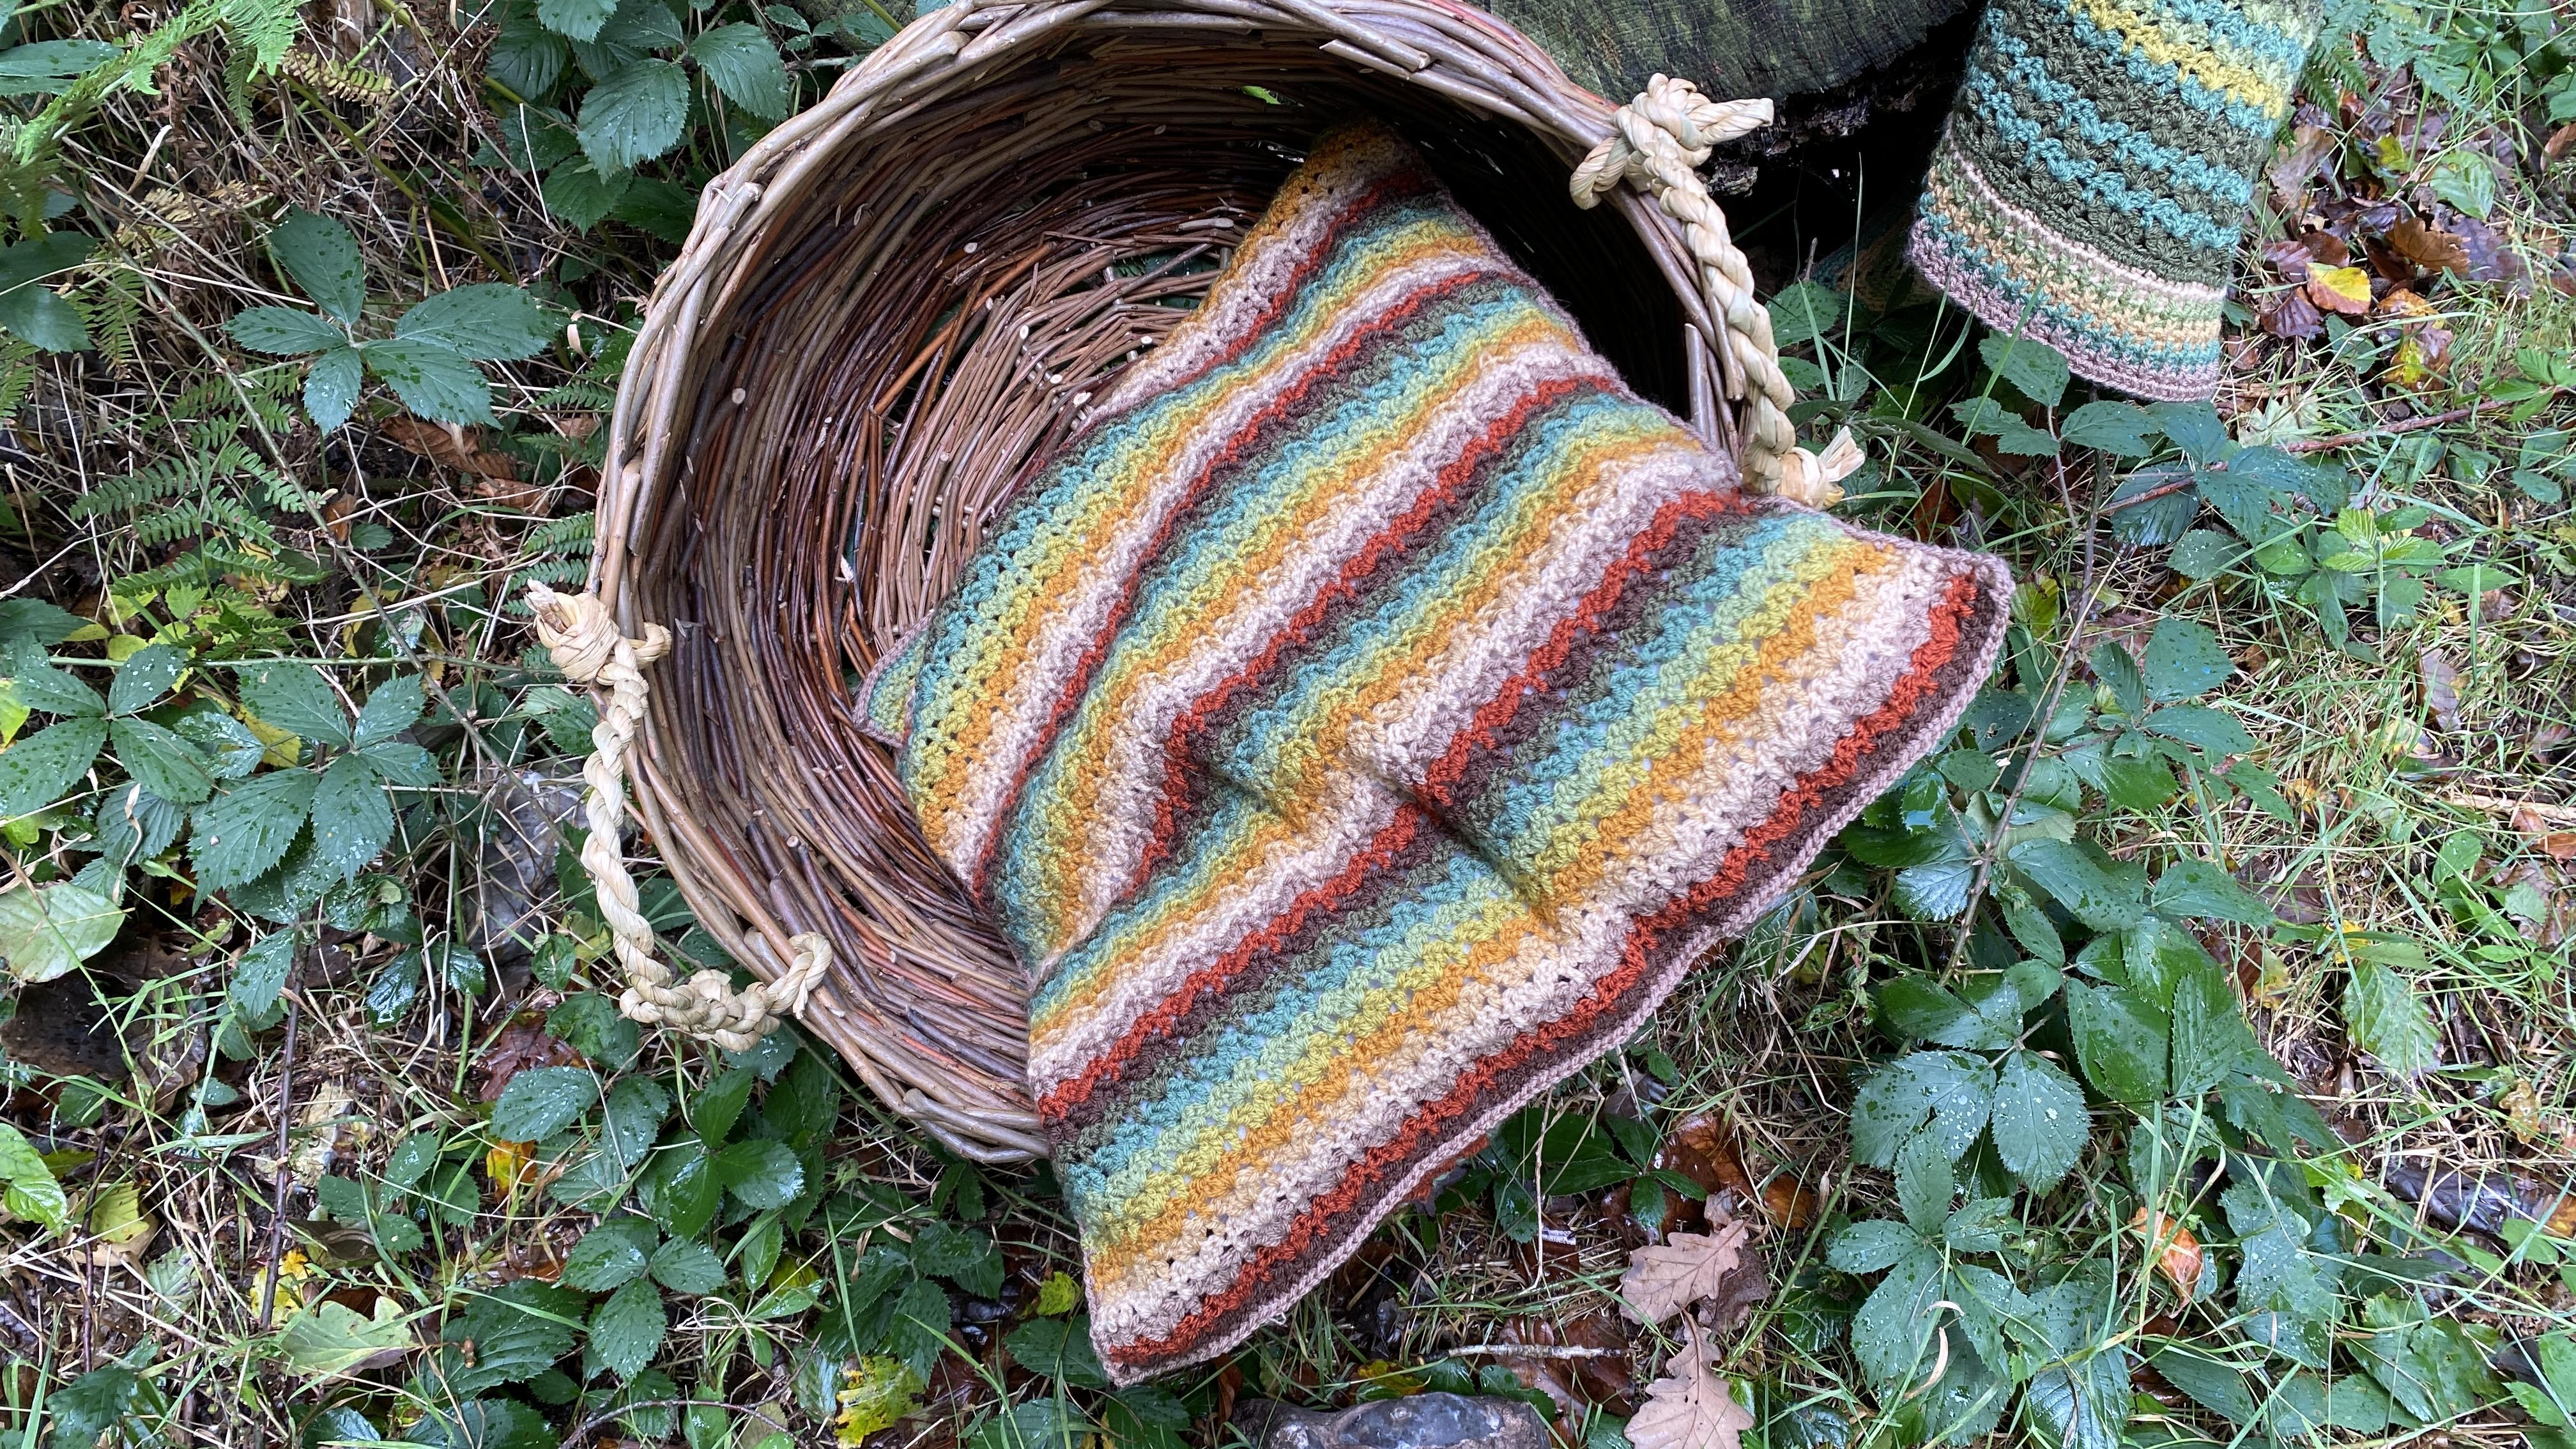 Autumn Walk cushion cover in basket in the woods